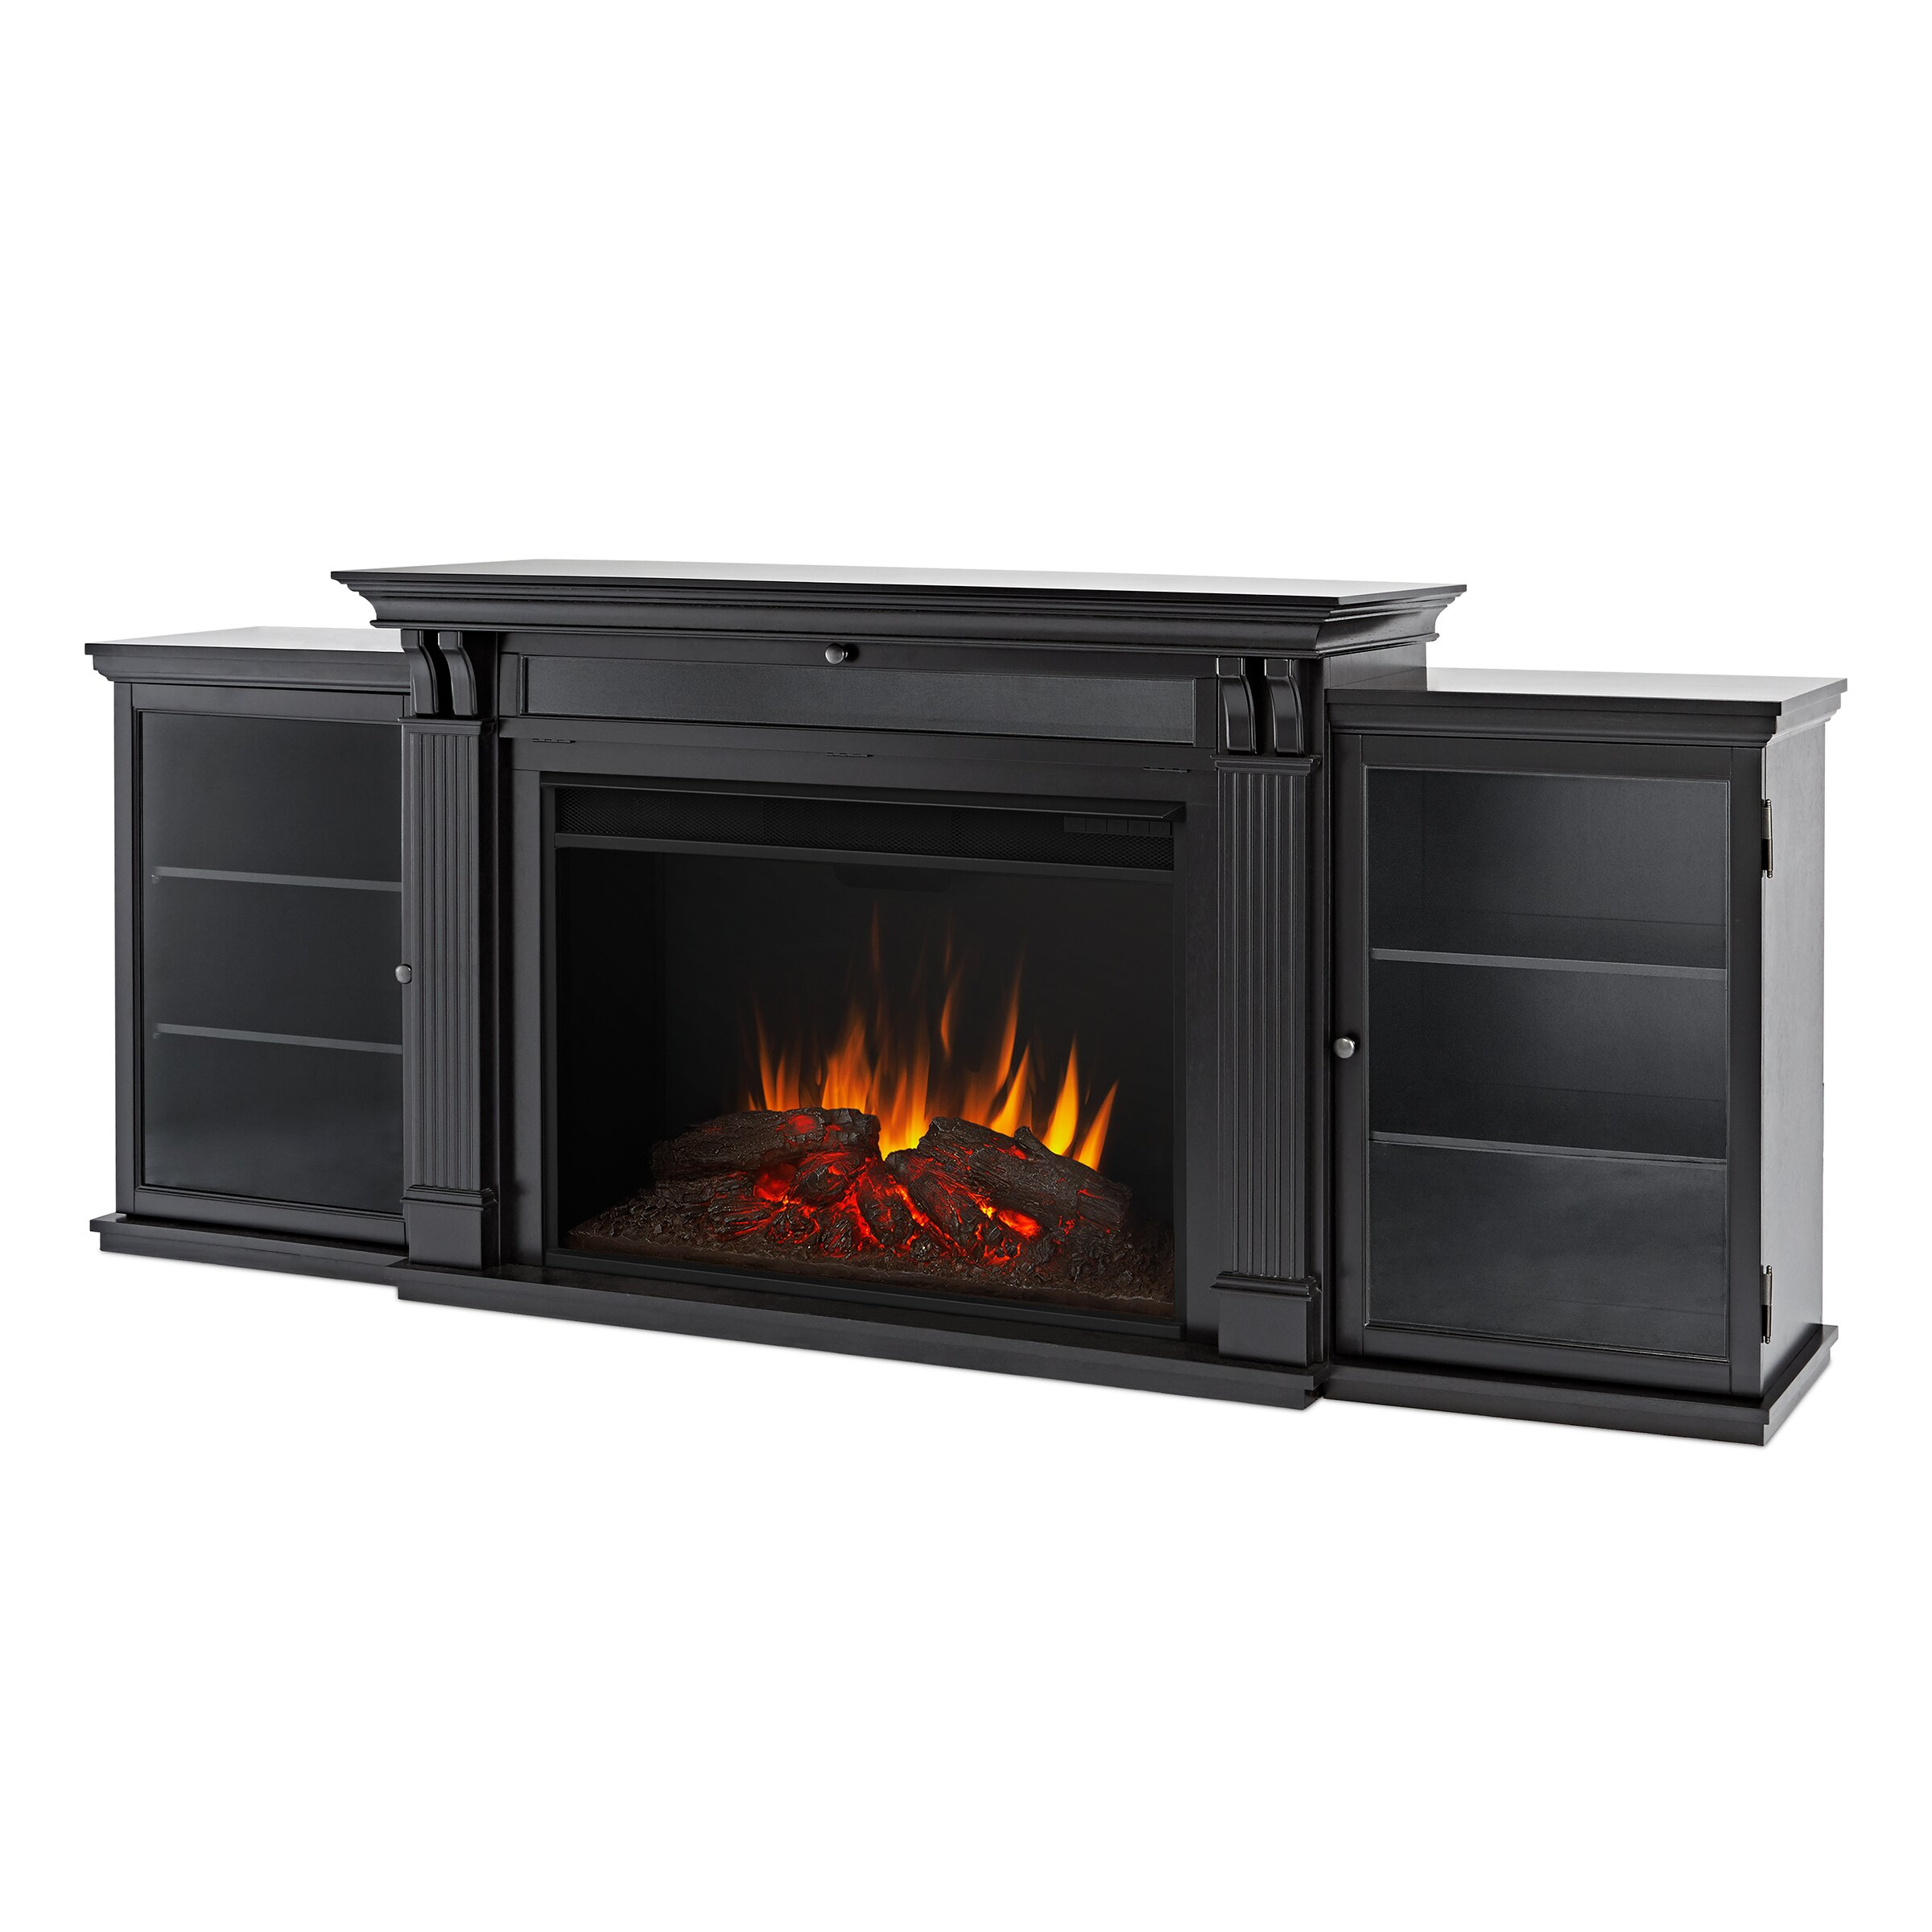 Air Handling Built To Order further Heating Cooling Guide moreover Real Flame 8720E Tracey Grand Entertainment Unit With Electric Fireplace In Black 8720E BLK JFP1883 additionally Acblr Active Chilled Beam Linear in addition Air Conditioning. on room heating and cooling units